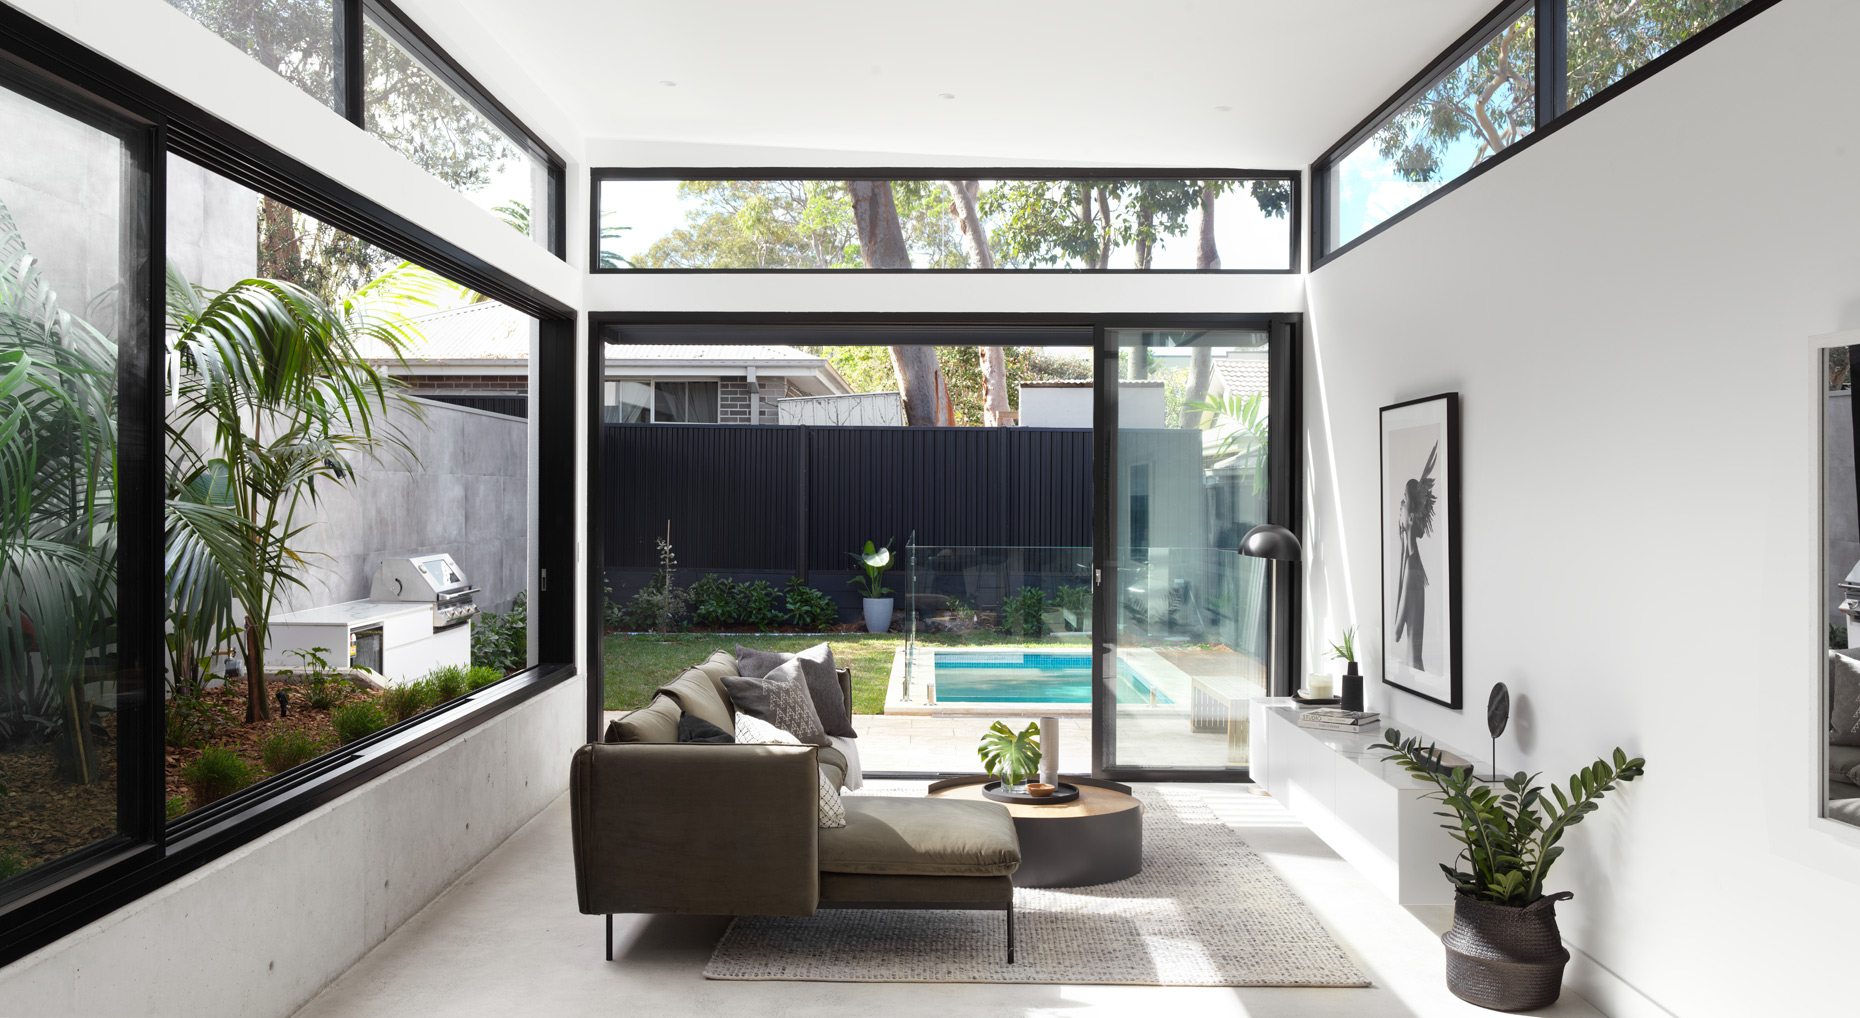 luke-butterly-cronulla-project-112-house-by-mason-projects-architecture-photography-sydney-5